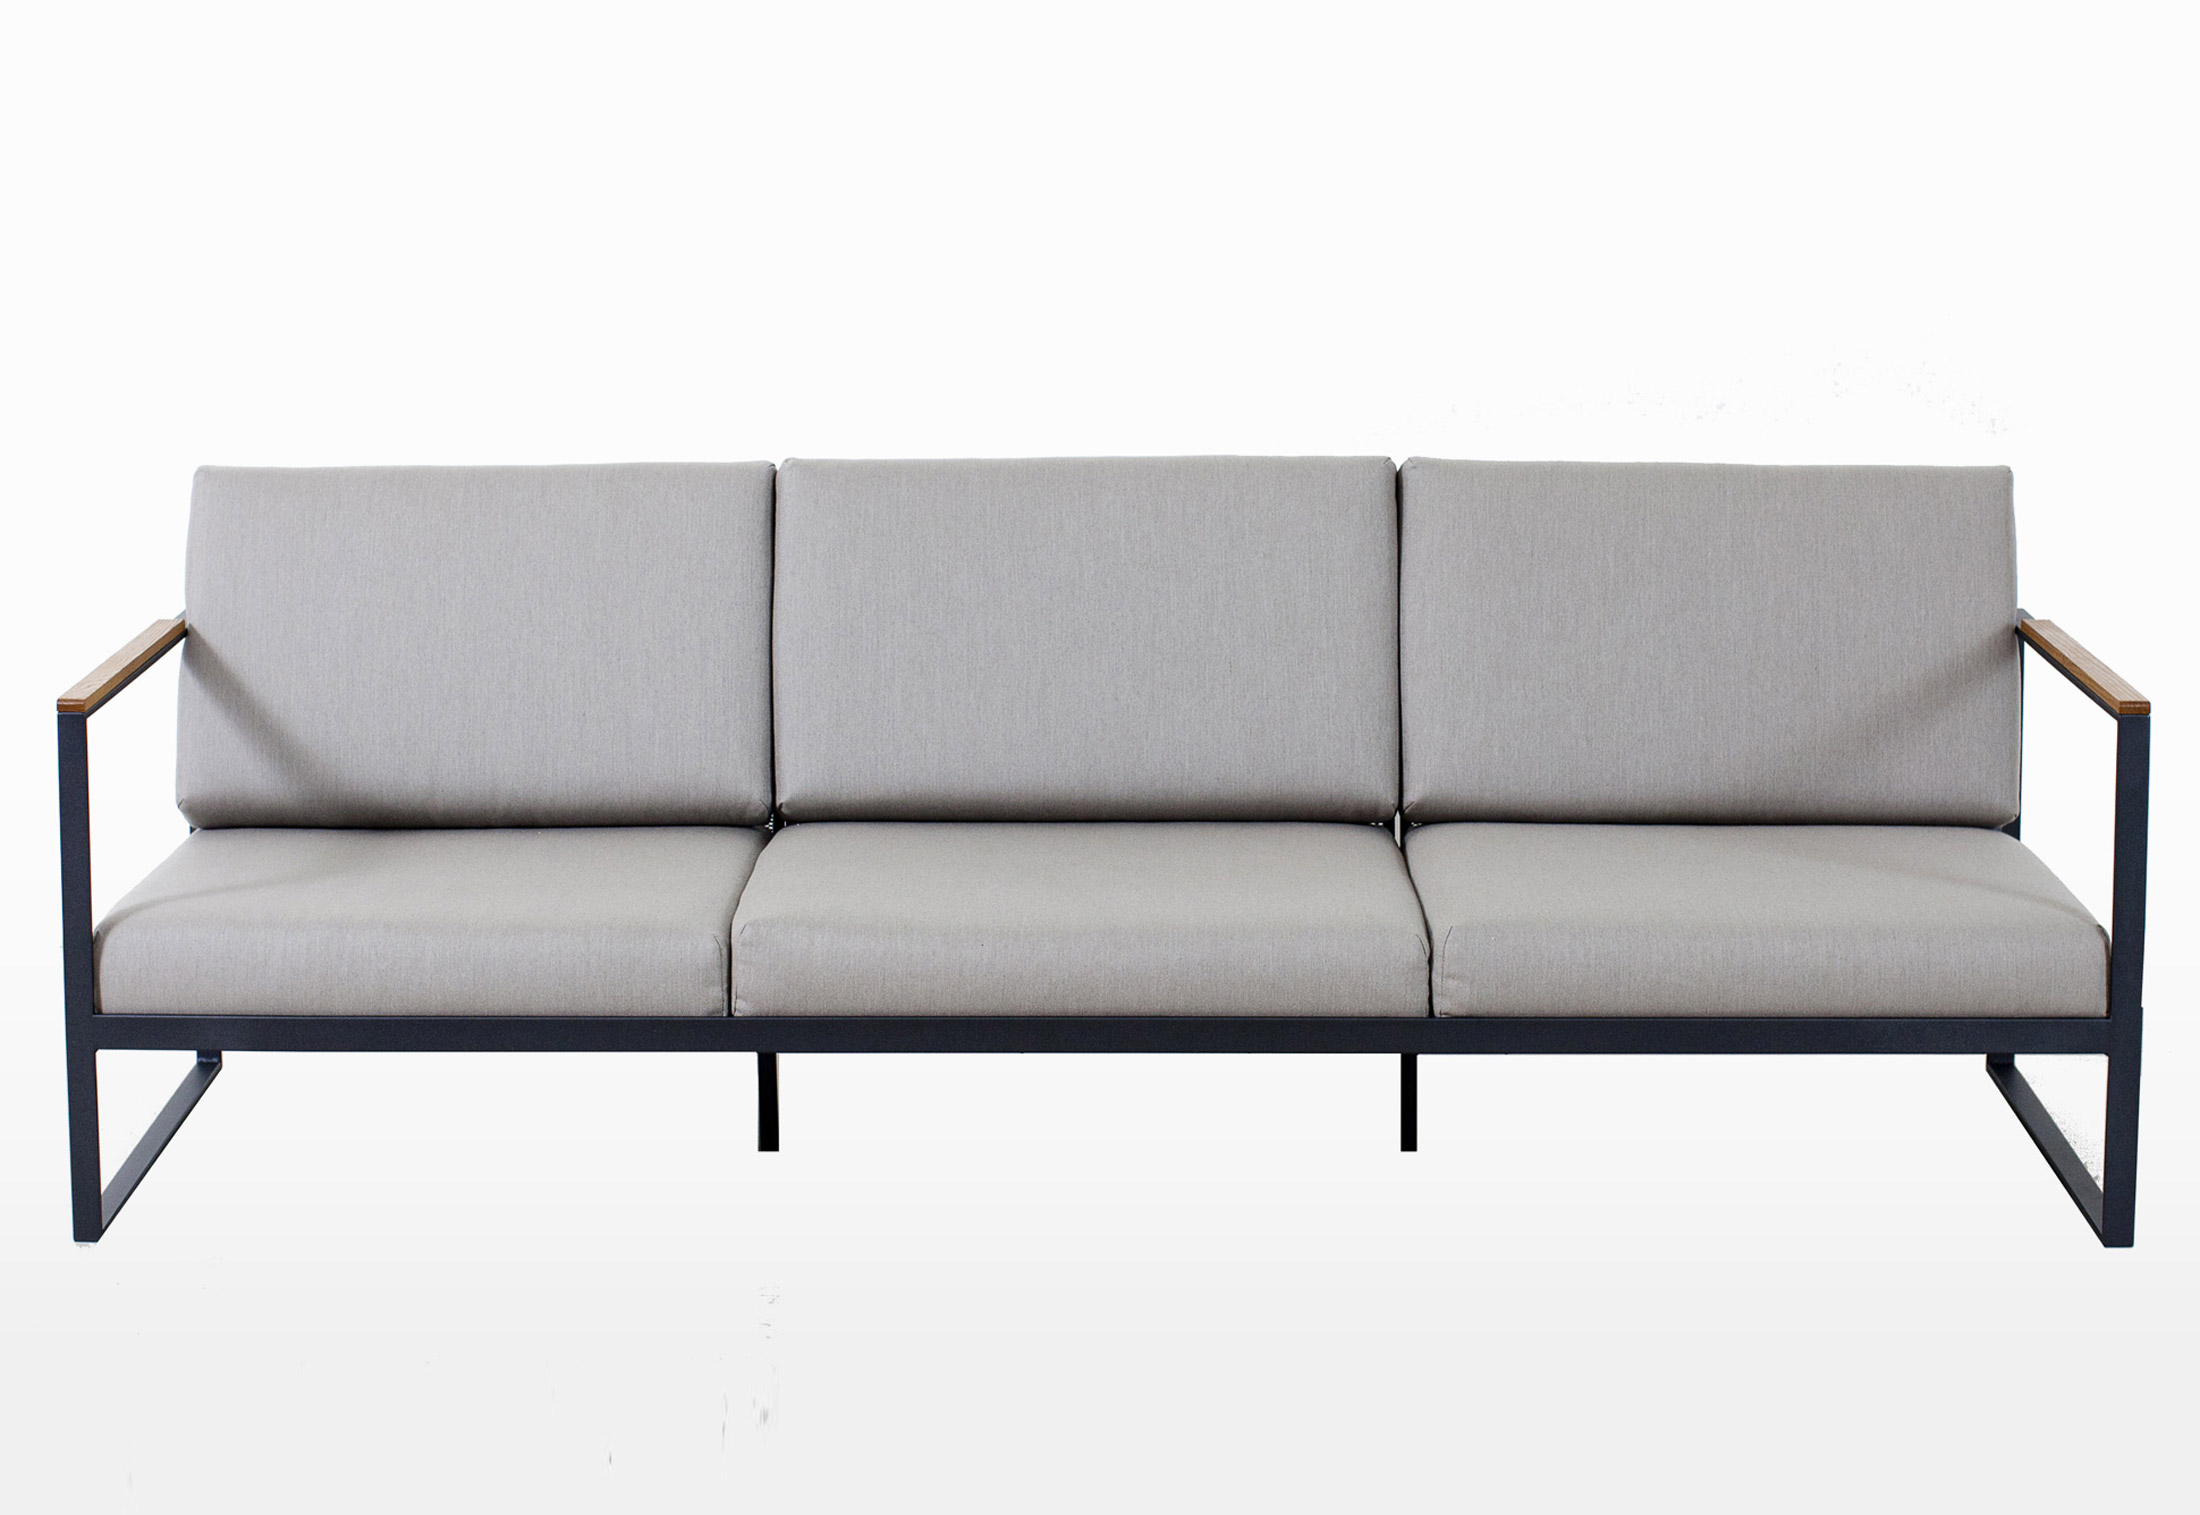 garden easy sofa 3 by röshults | stylepark, Hause deko